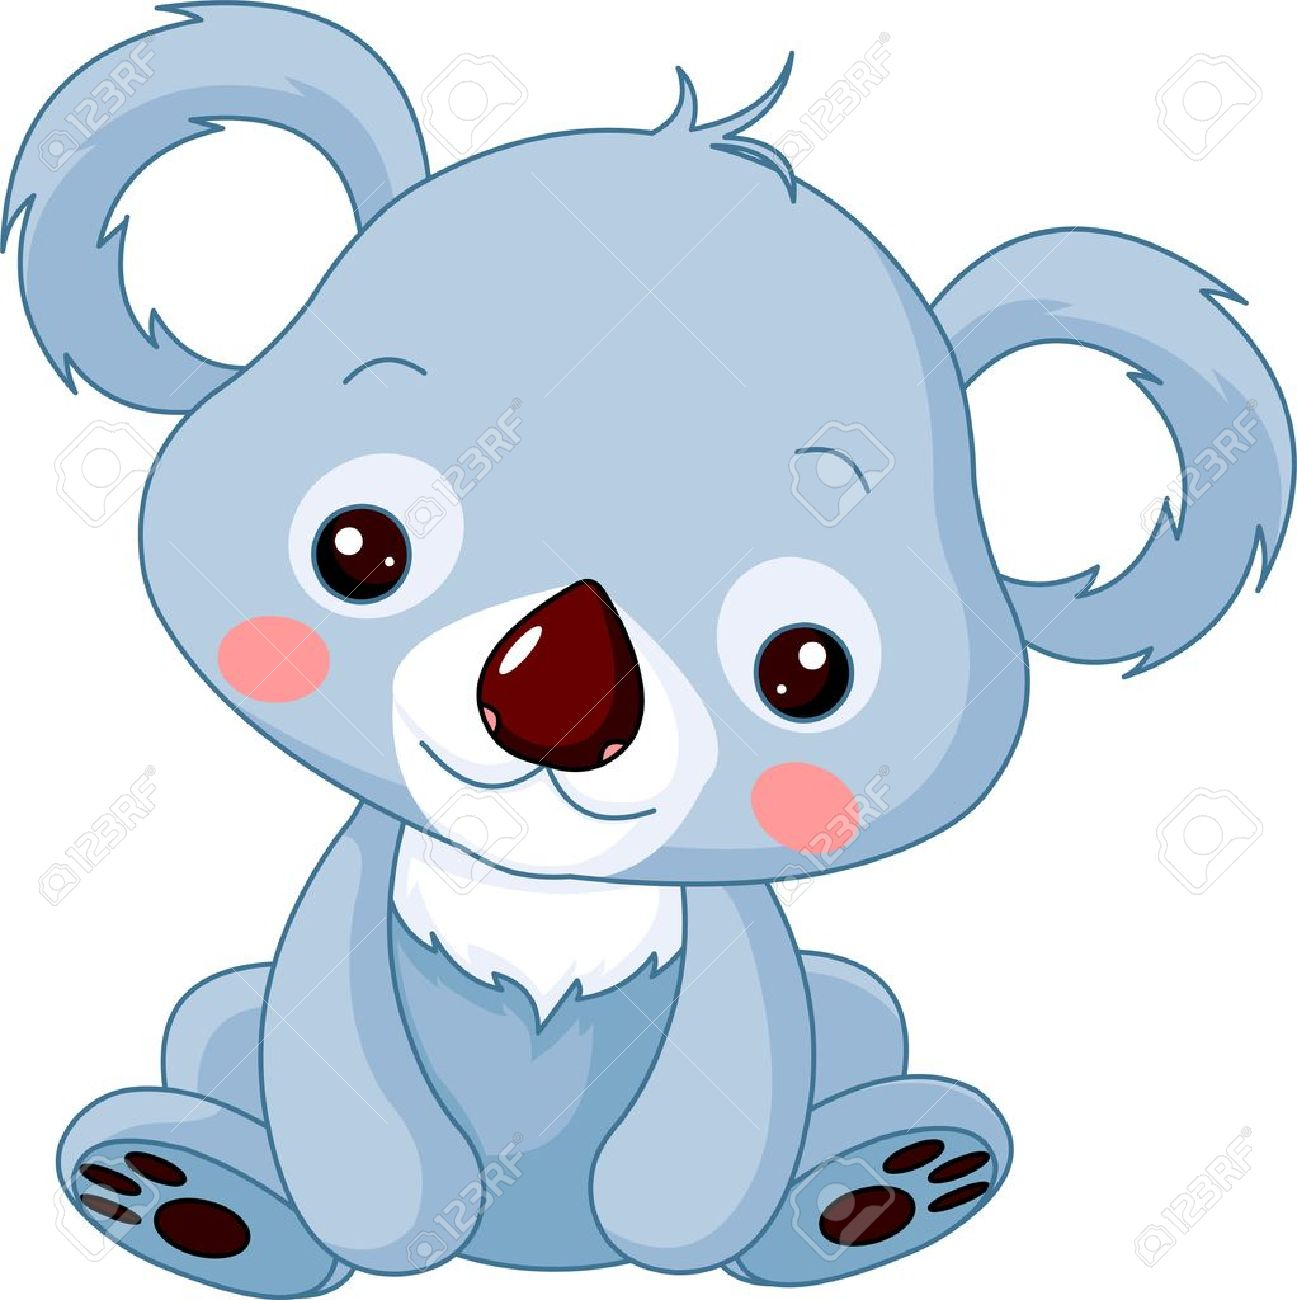 Fun zoo. Illustration of cute Koala Bear.